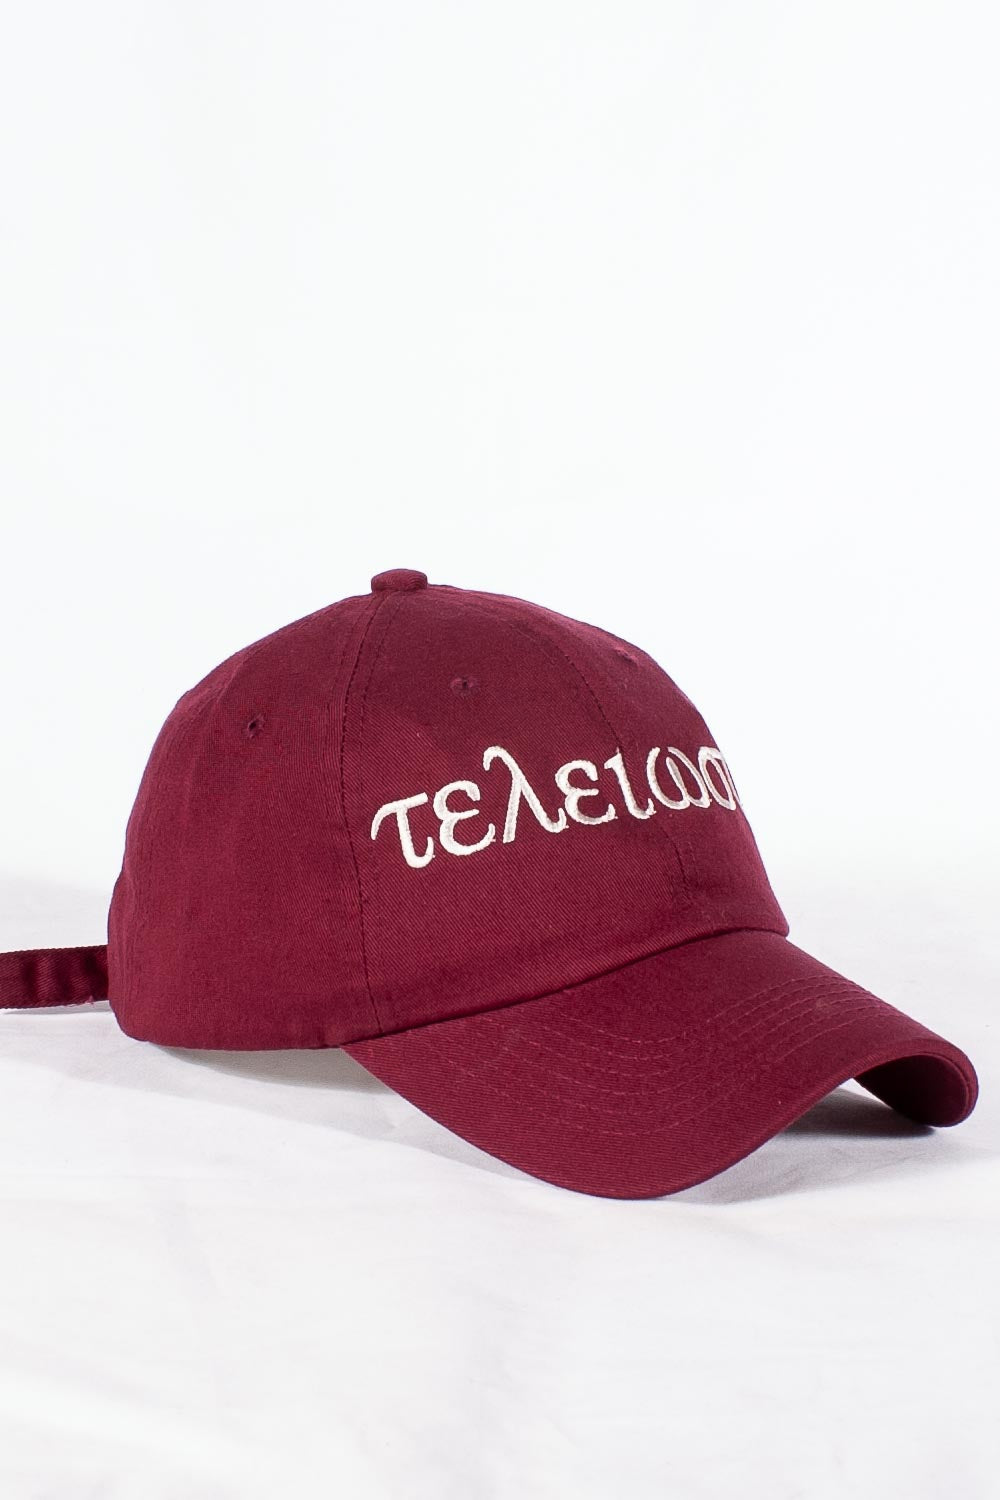 909a2762f50ac Nupes Only τελείωσις polo dad hat